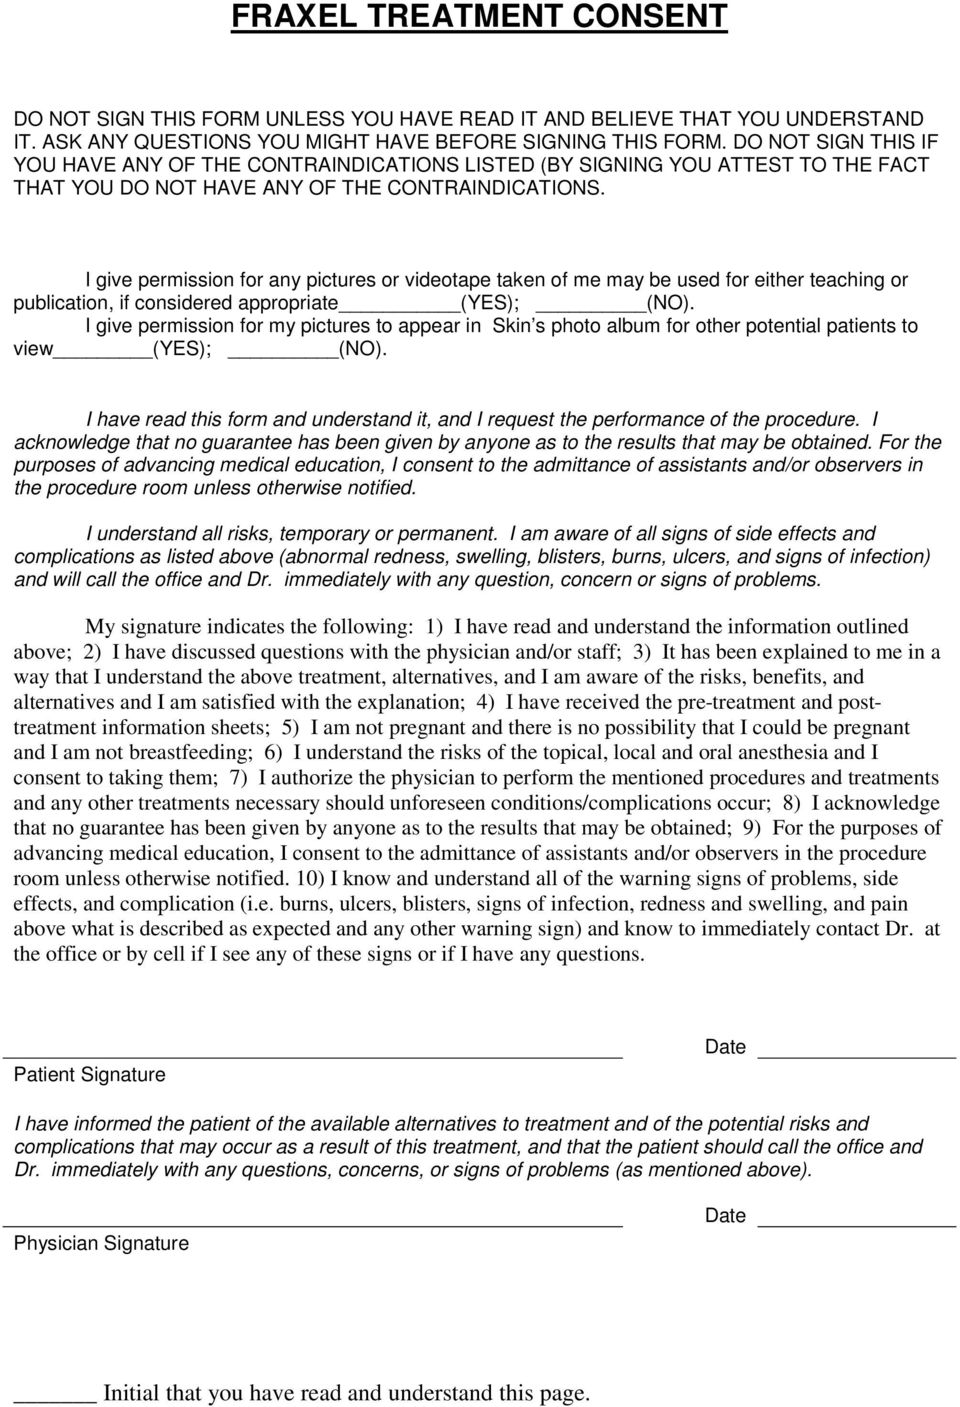 FRAXEL TREATMENT CONSENT - PDF